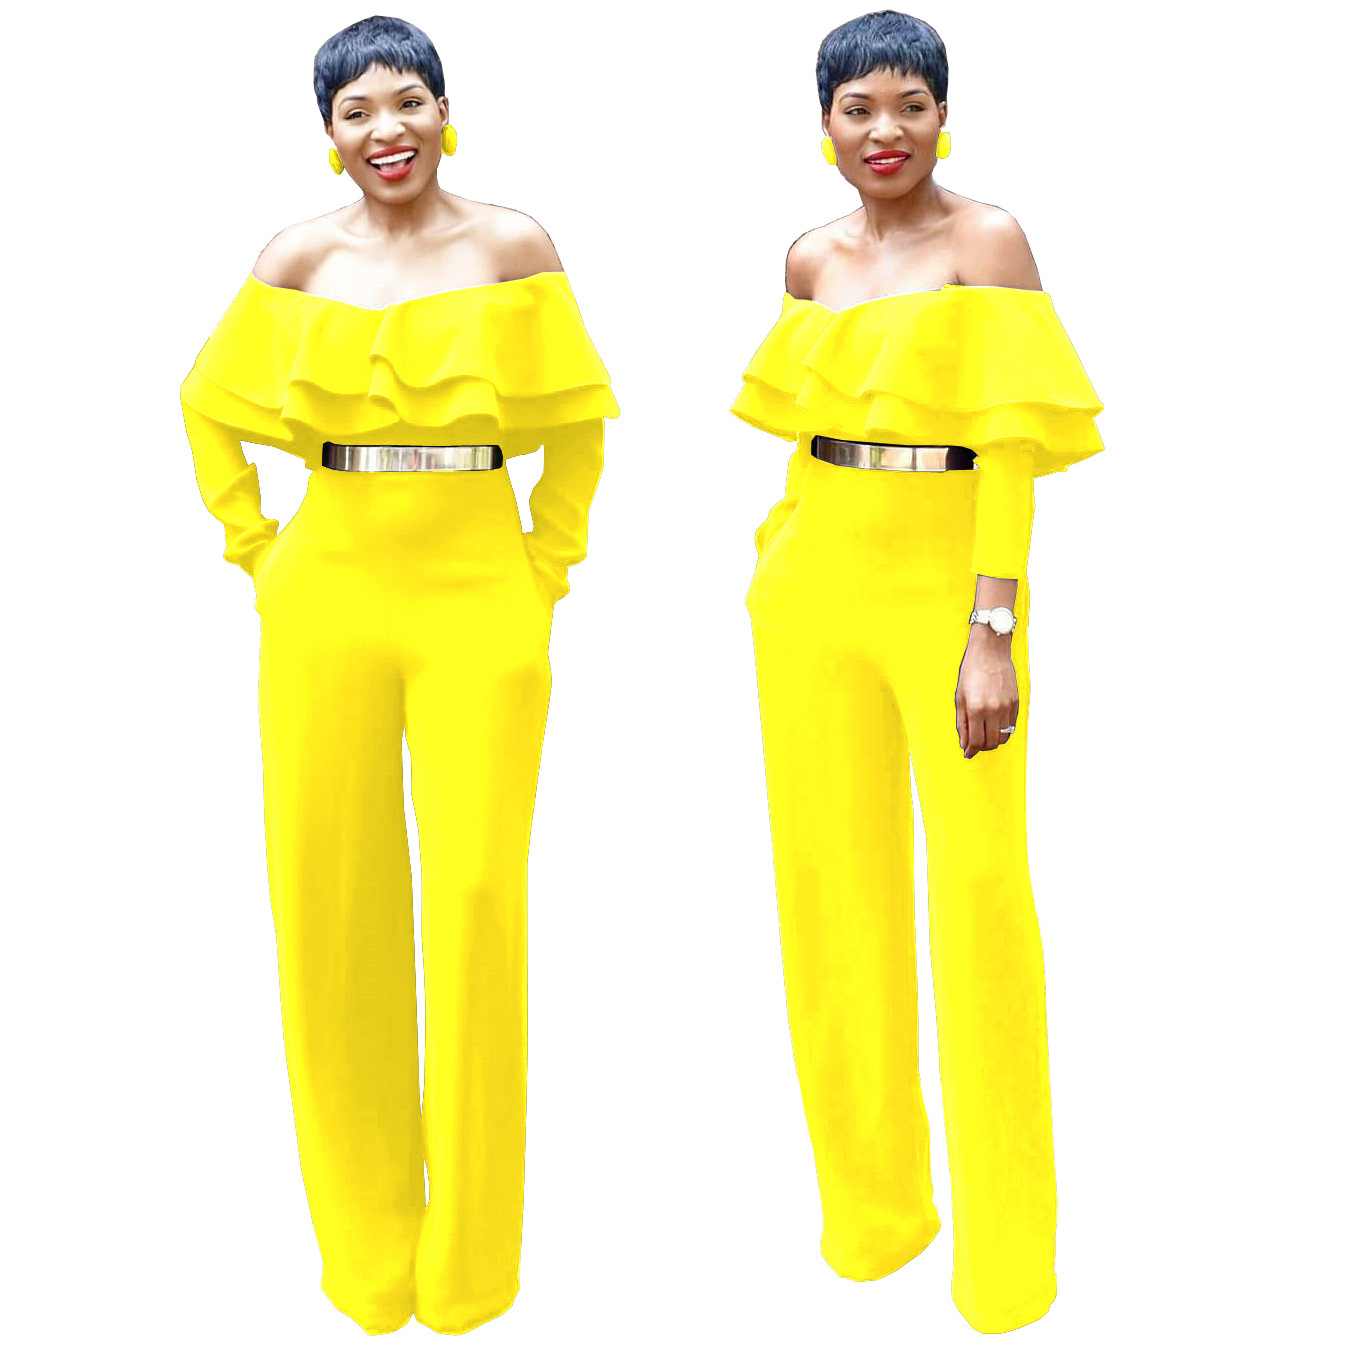 Ruffle Off Shoulder Jumpsuits for Women 2019 New Sexy Strapless Spring Autumn Hot Bodysuits Plus Size Yellow Playsuits for Party